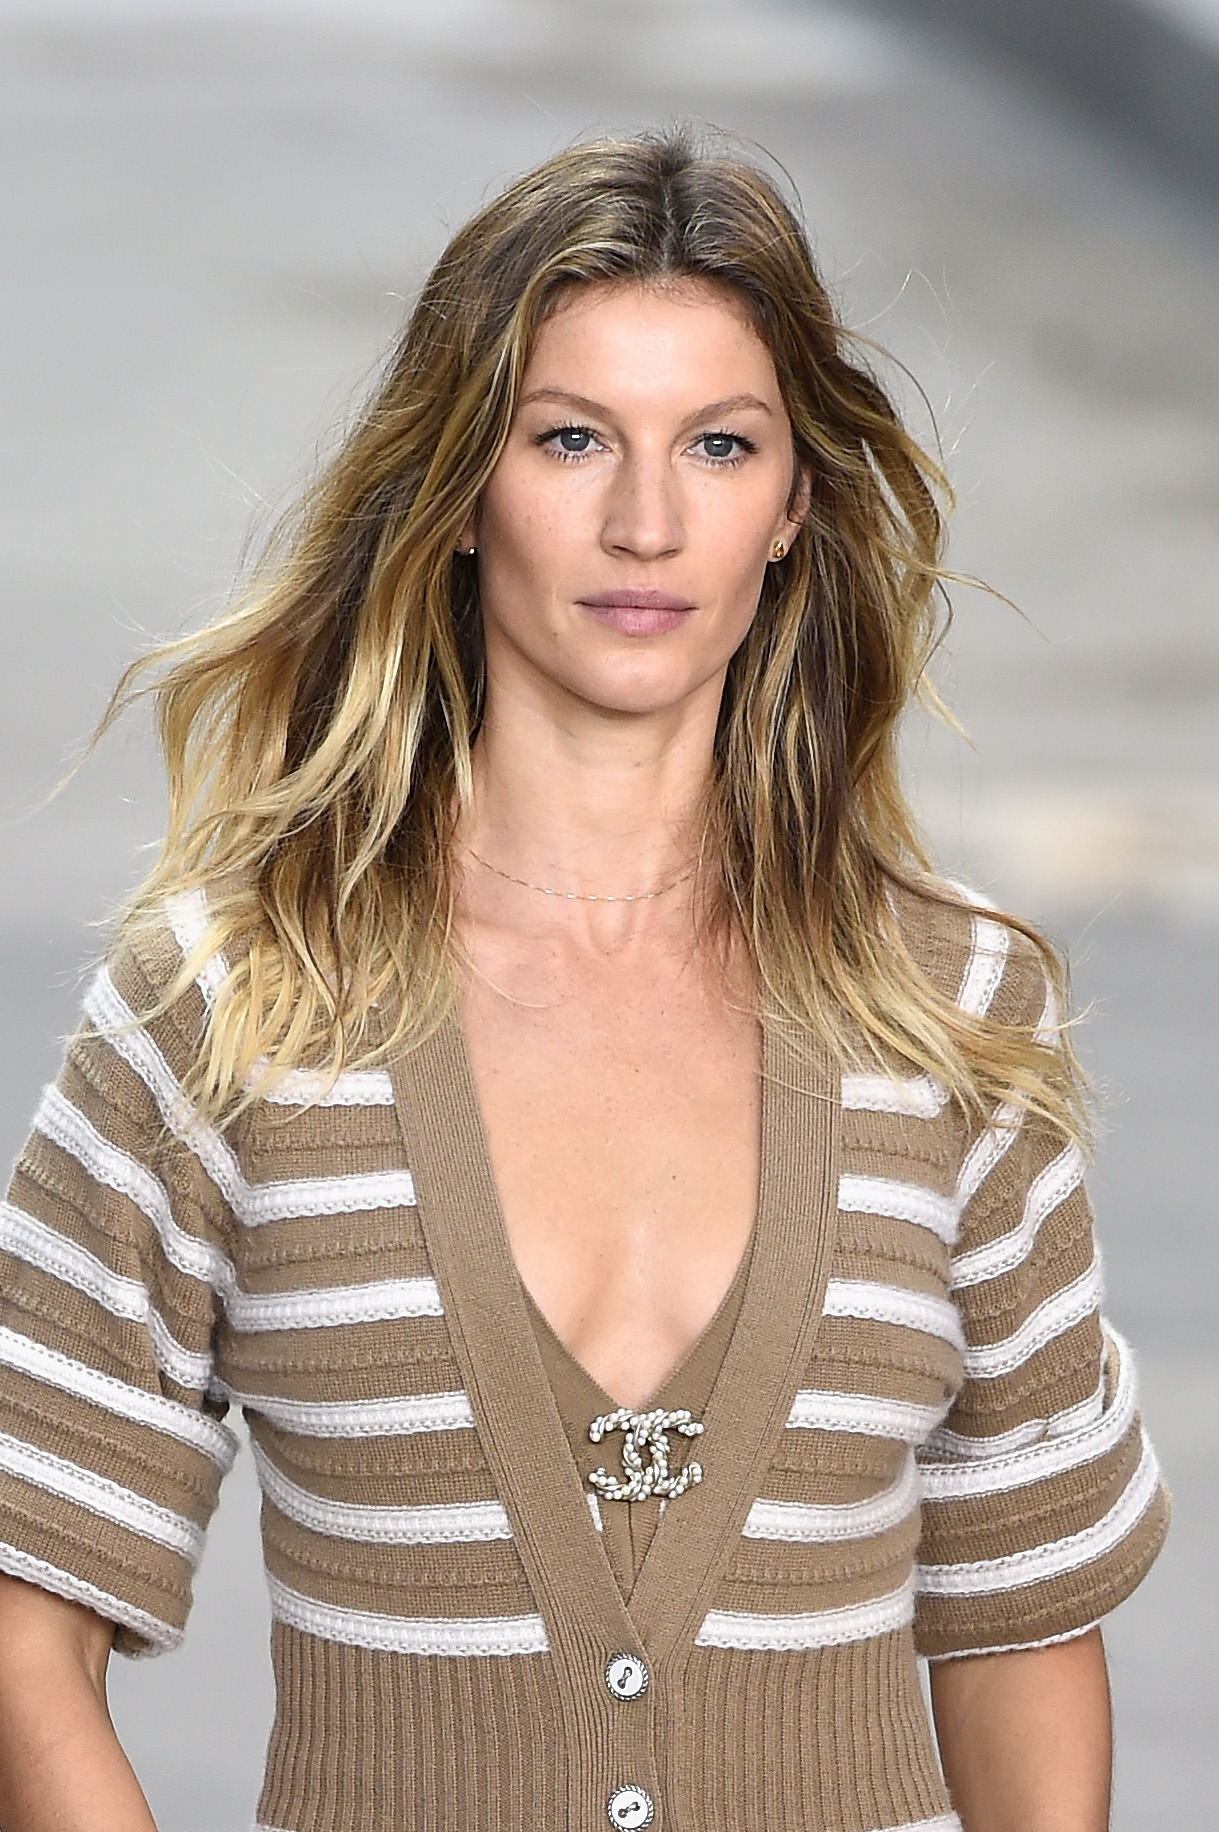 PARIS, FRANCE - SEPTEMBER 30: Model Gisele Bundchen walks the runway during the Chanel show as part of the Paris Fashion Week Womenswear Spring/Summer 2015 on September 30, 2014 in Paris, France. (Photo by Pascal Le Segretain/Getty Images)